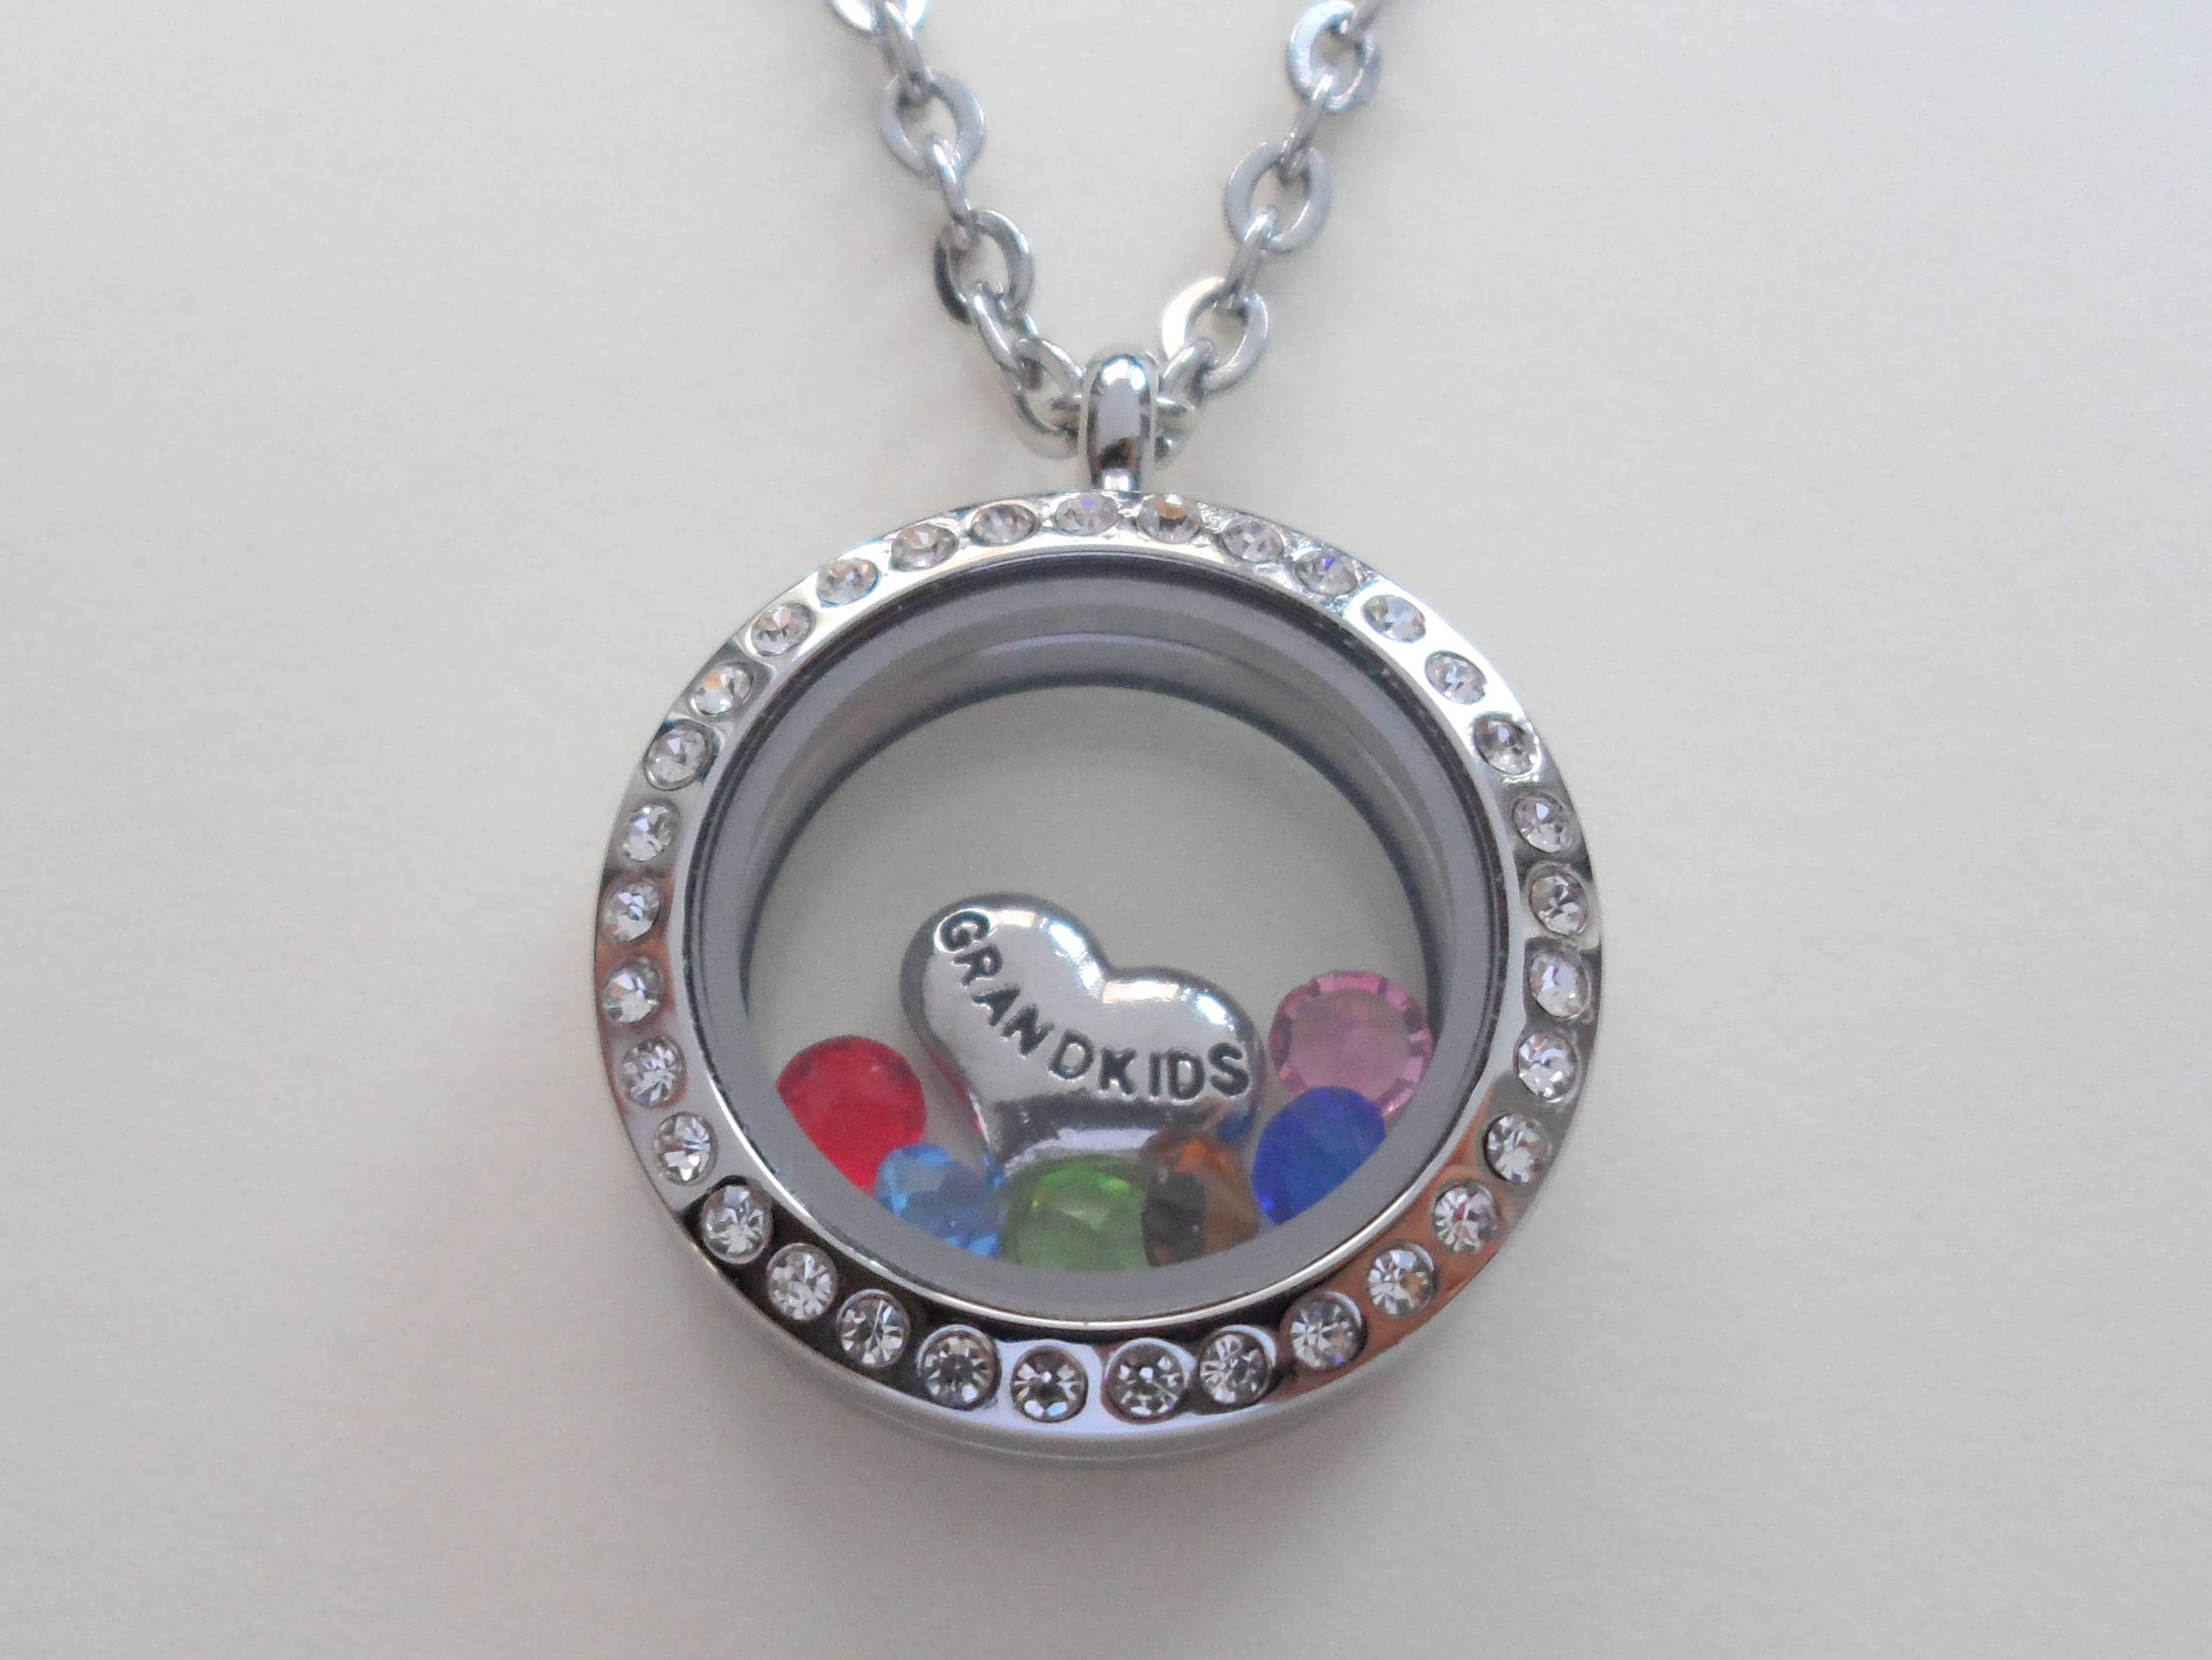 grandkid custom fullxfull necklace mom new for charm wife personalized birthstone mother mimi il gift grandma listing heart jewelry